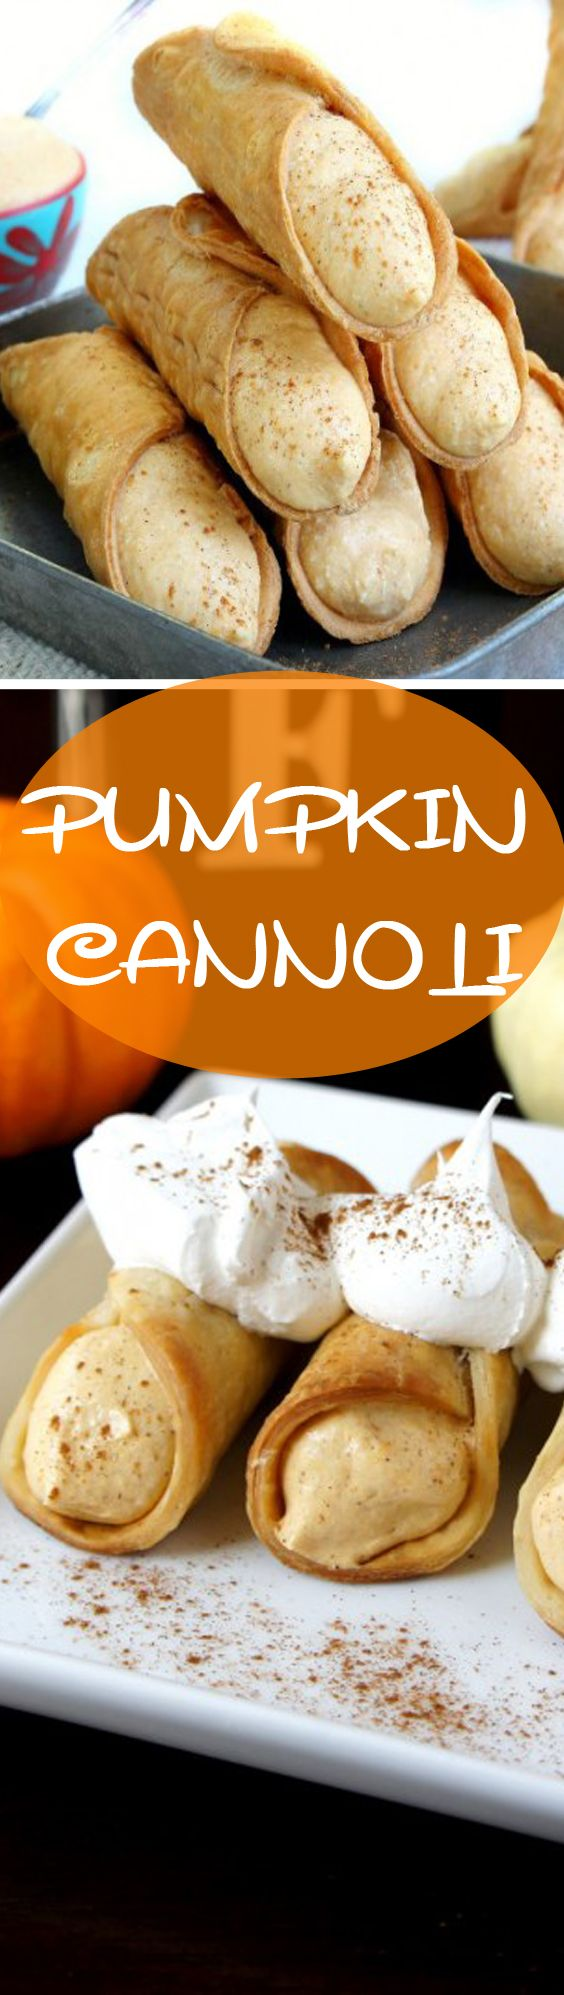 Pumpkin Cannoli recipe…. This summer I took a blogging break! Some of you have missed me, some of you did not even notice there was no email coming from me for weeks